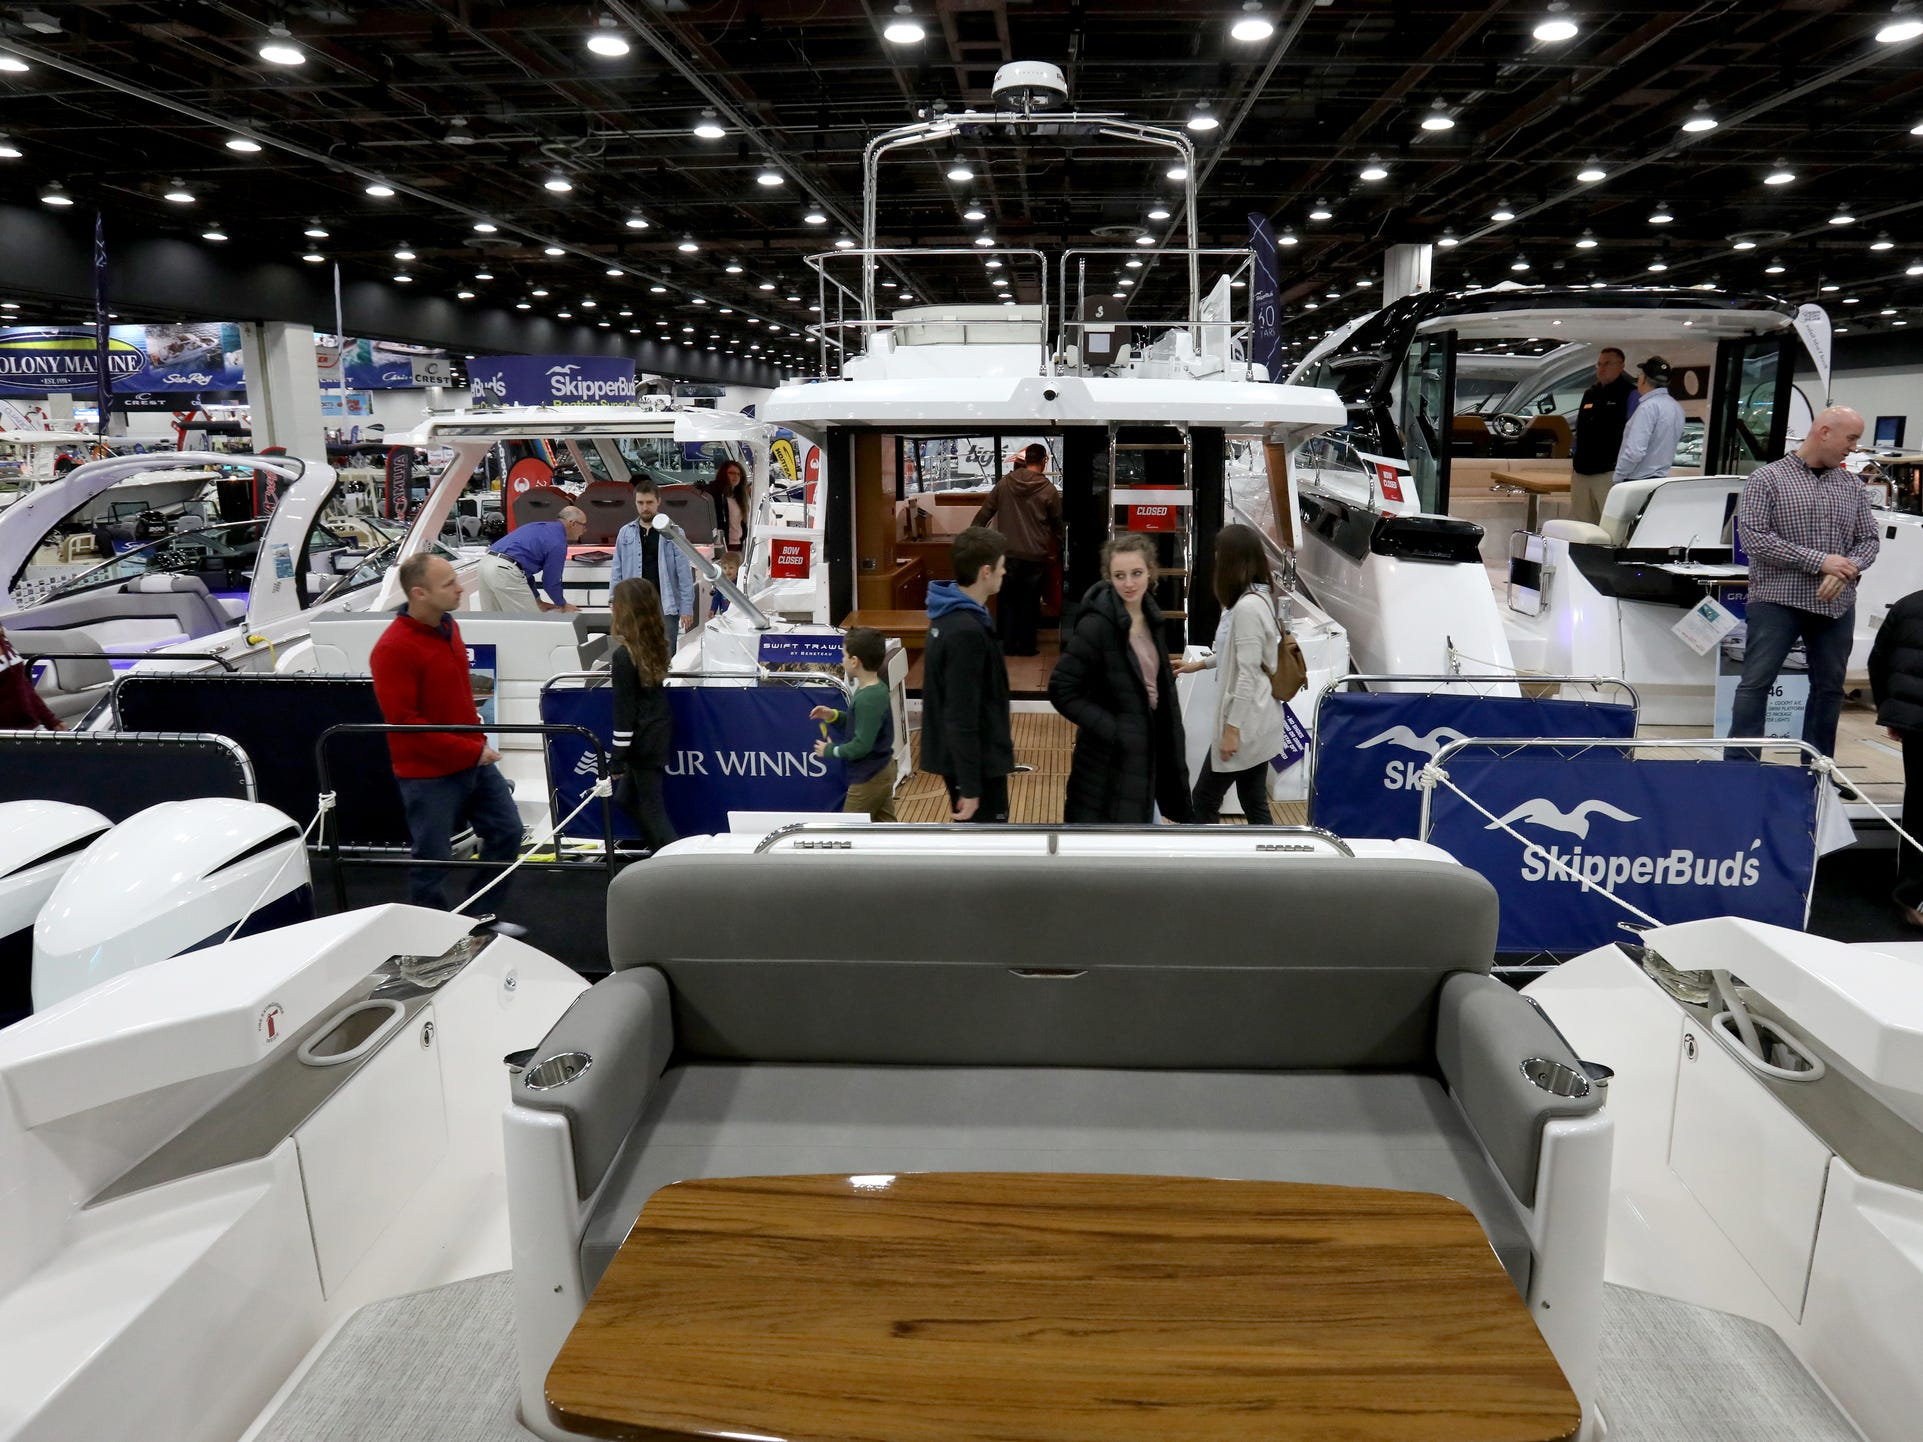 A look out of the back of the Tiara 39 foot Coupe for sale at $695,000 at the Skipper Buds display during the week long Detroit Boat Show at Cobo Center in Detroit on Saturday, February 16, 2019.